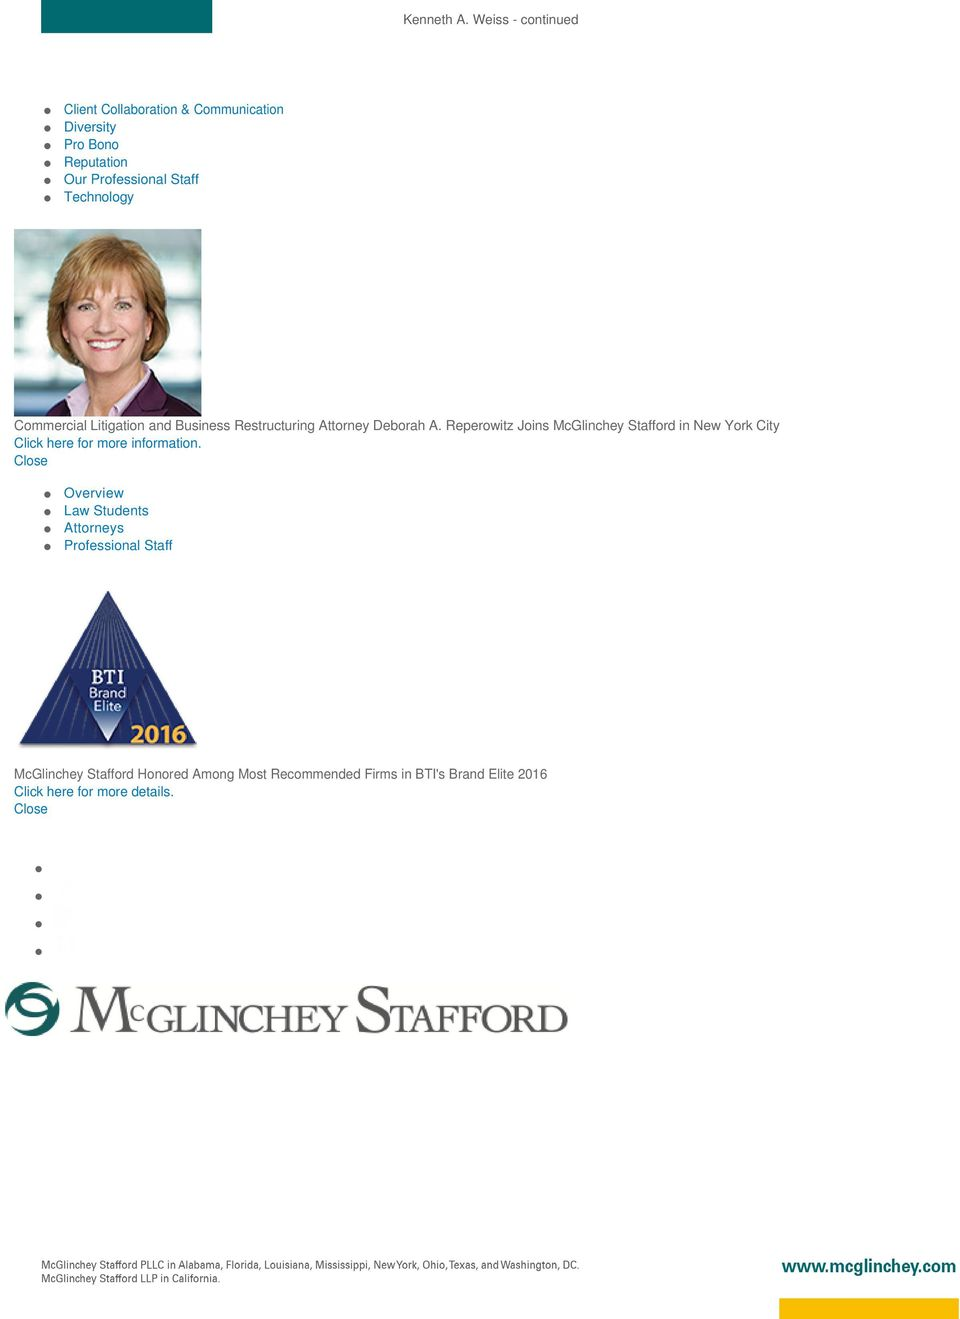 Reperowitz Joins McGlinchey Stafford in New York City Click here for more information.